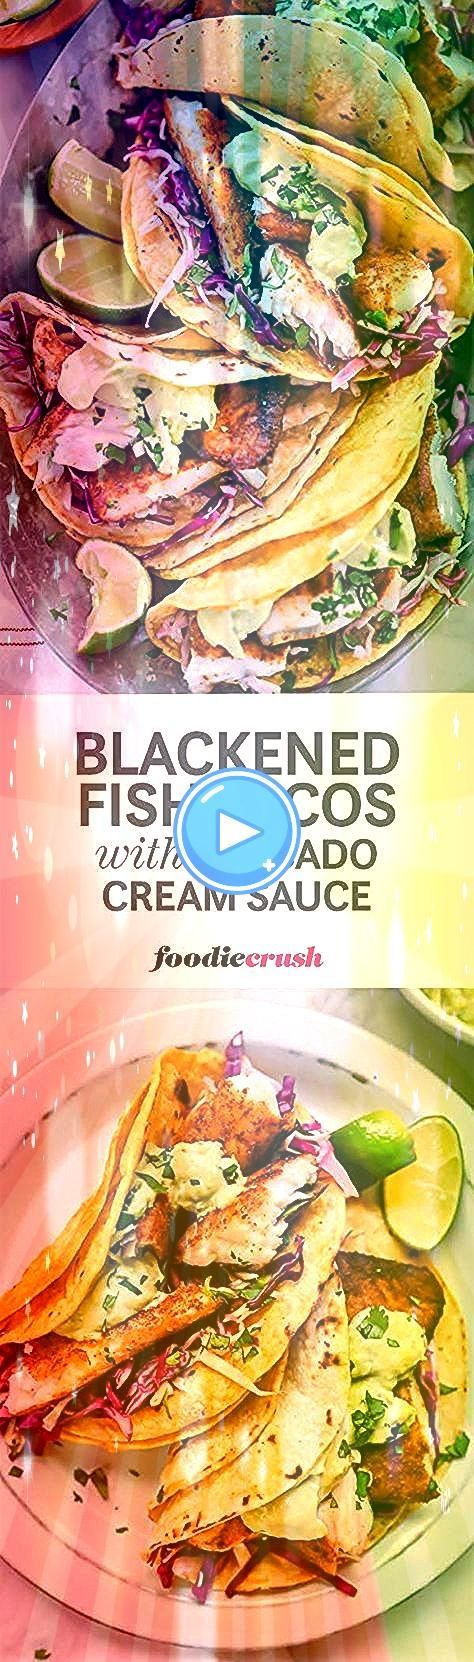 Recipes Bajastyle fish tacos get a blackened cajun fix cooled off with an avocado cilantro tartar sauce and cabbage for a fast and easy taco meal  Bajastyle fish tacos ge...